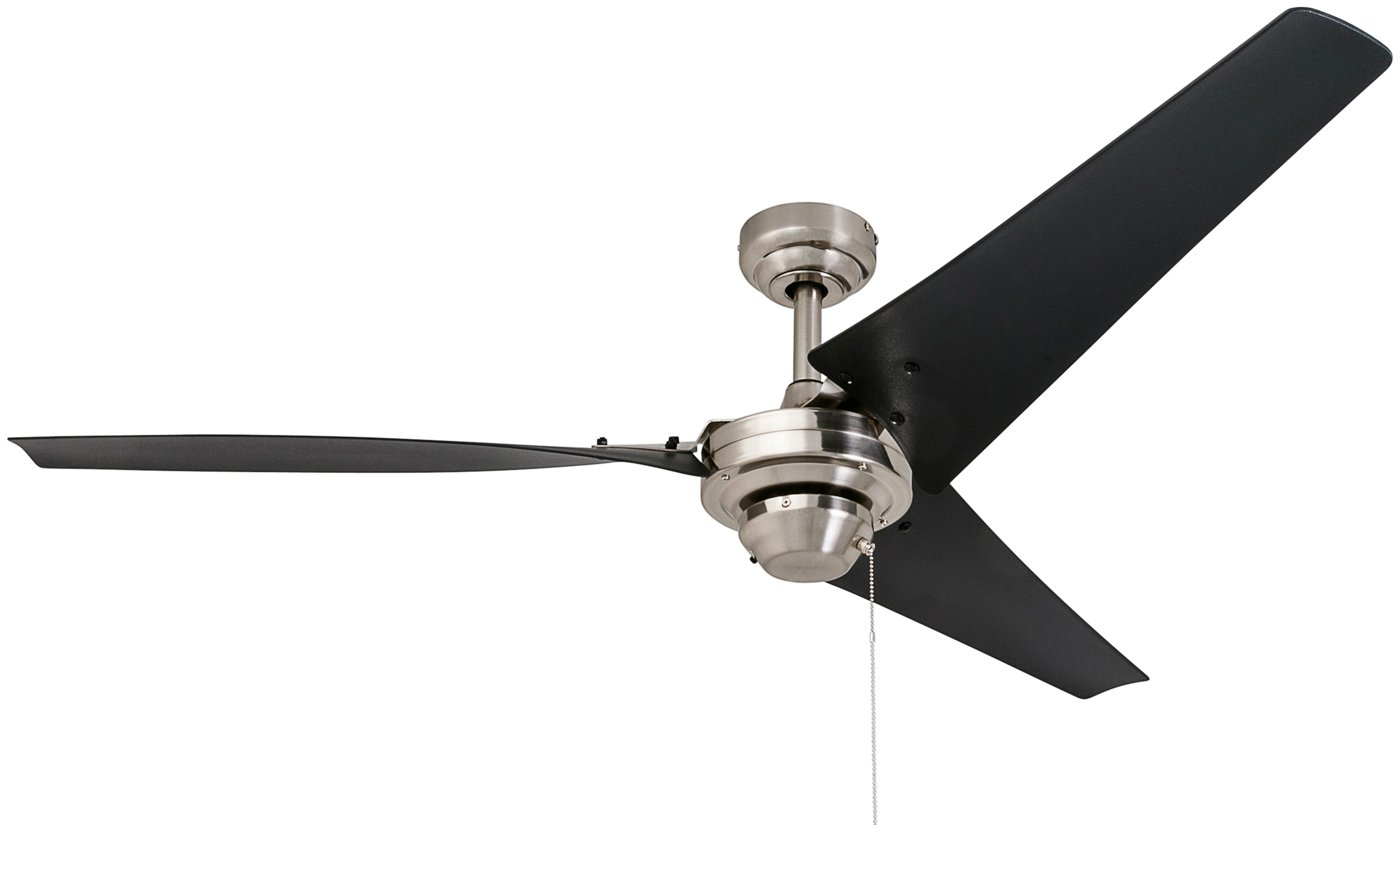 Prominence Home 50330 Almadale Industrial Ceiling Fan, 56 inches, Energy Efficient Black Matte Blades, Brushed Nickel